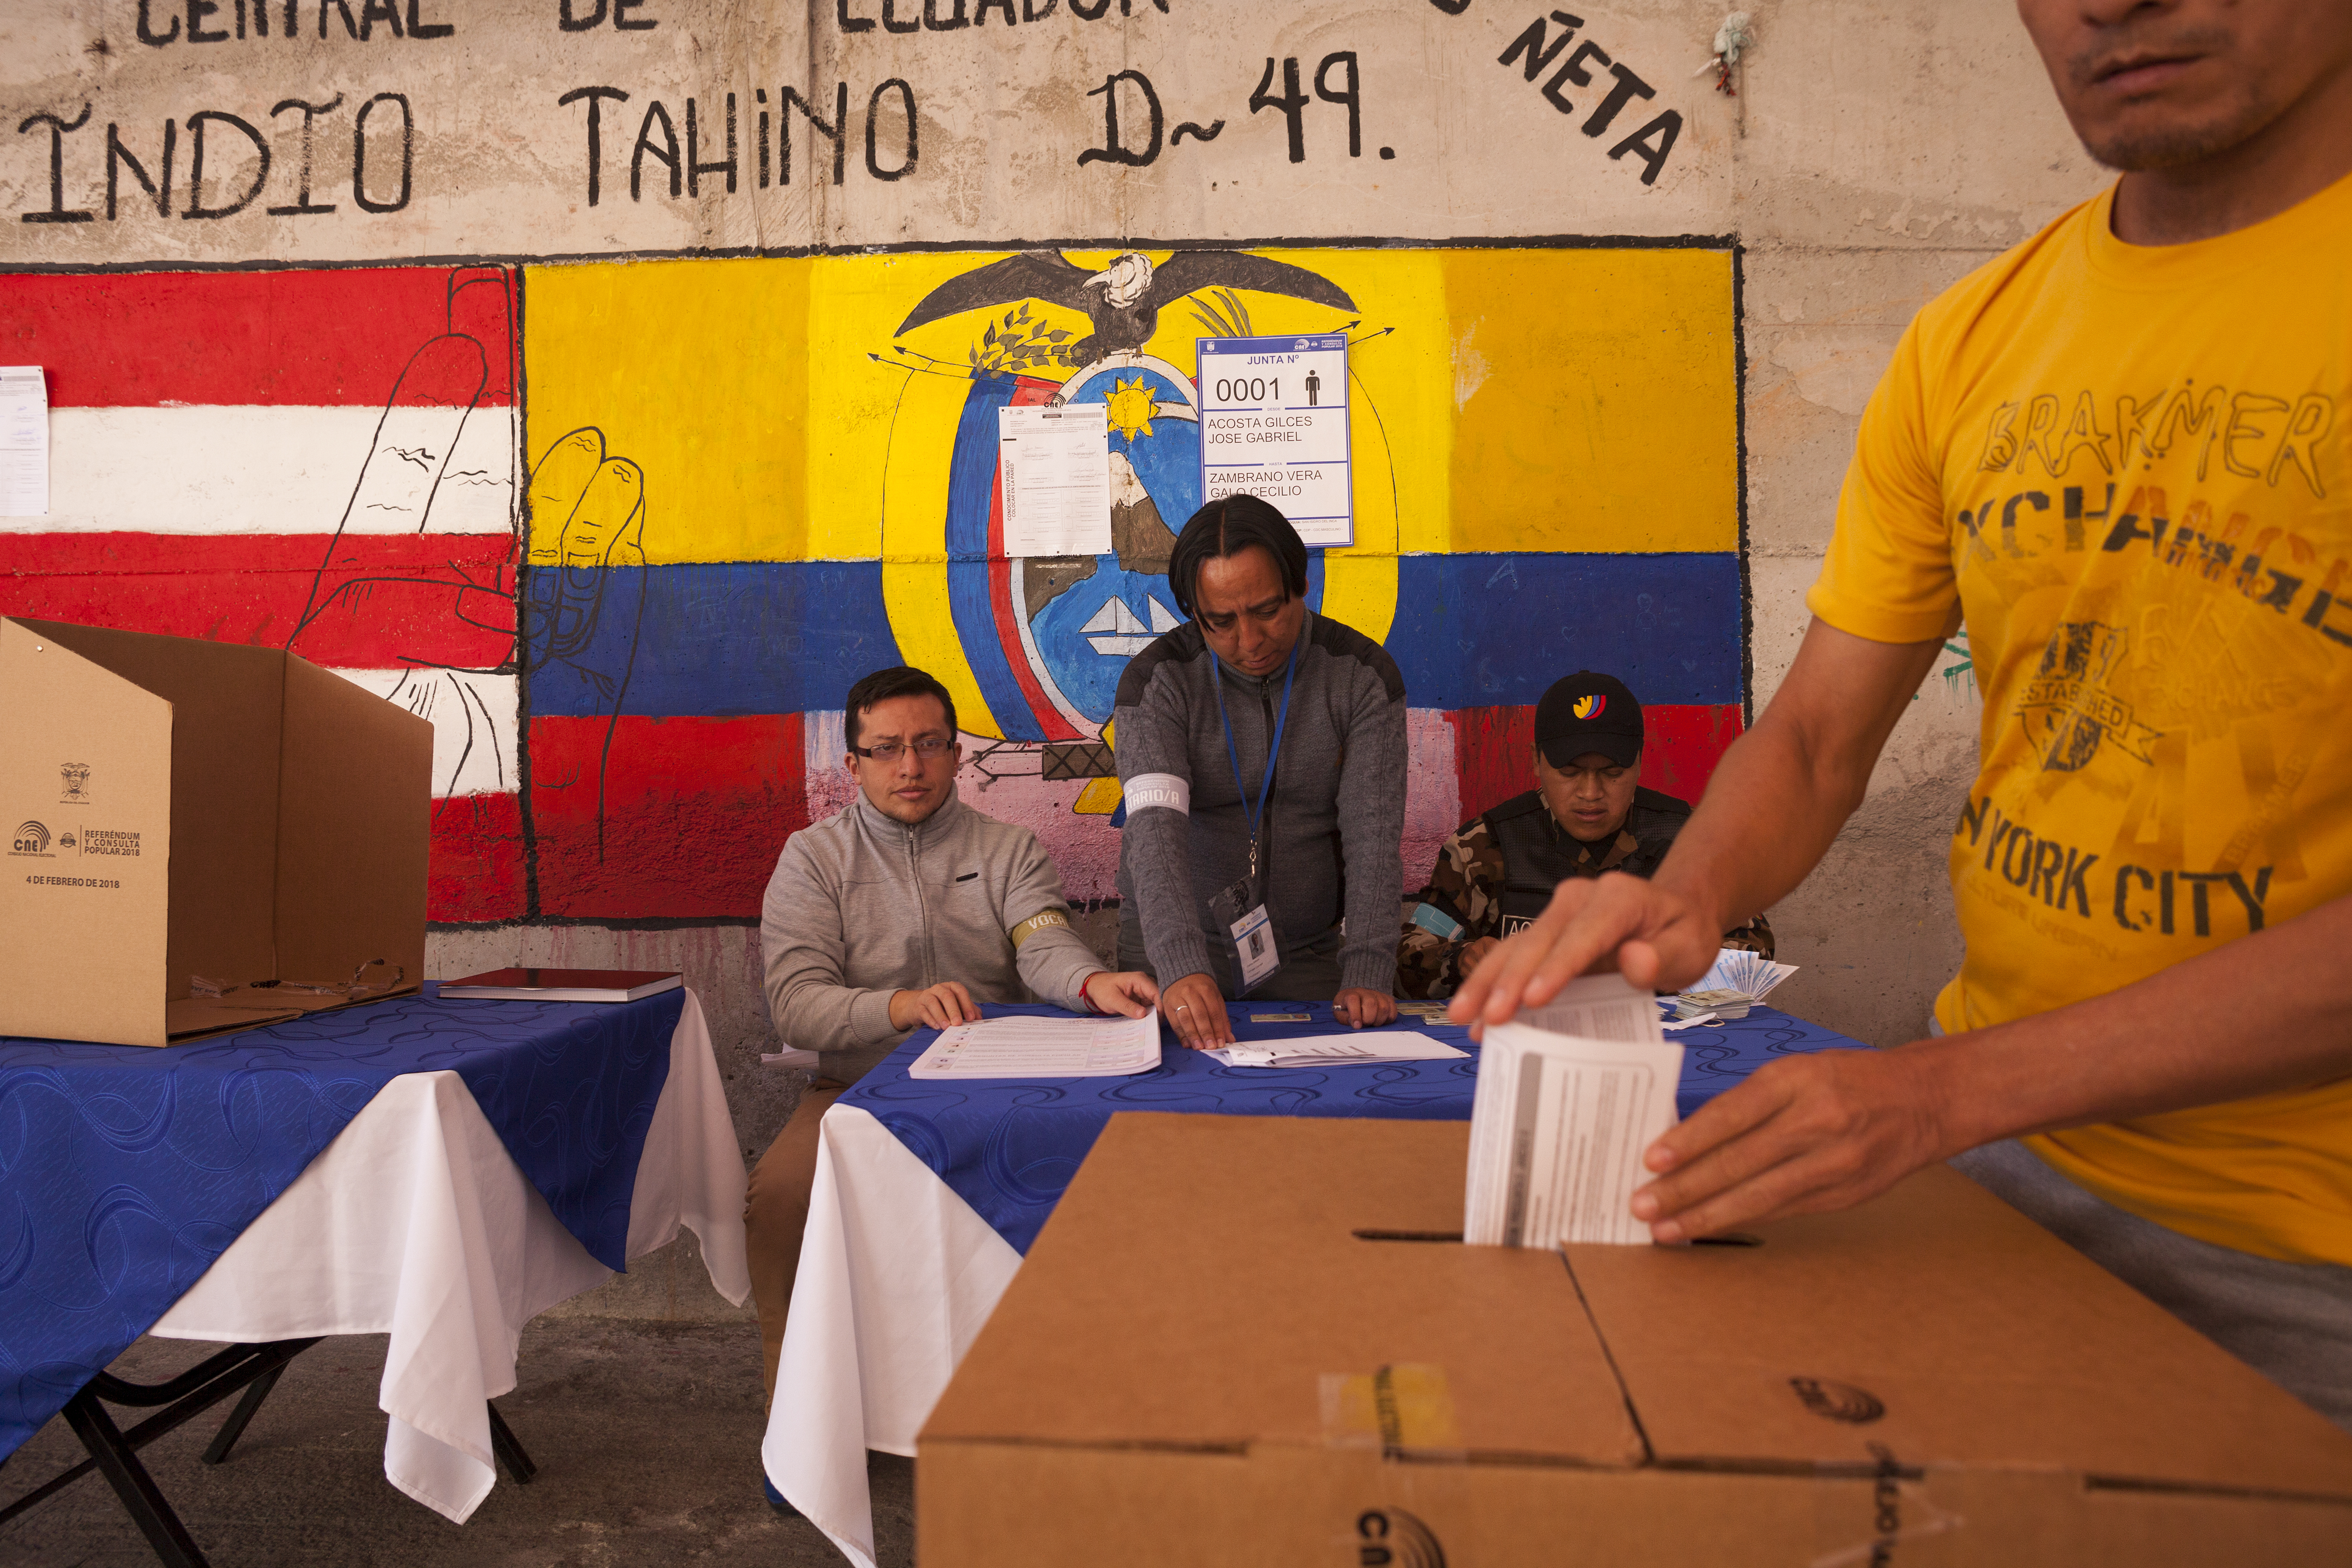 Voting in Ecuador.